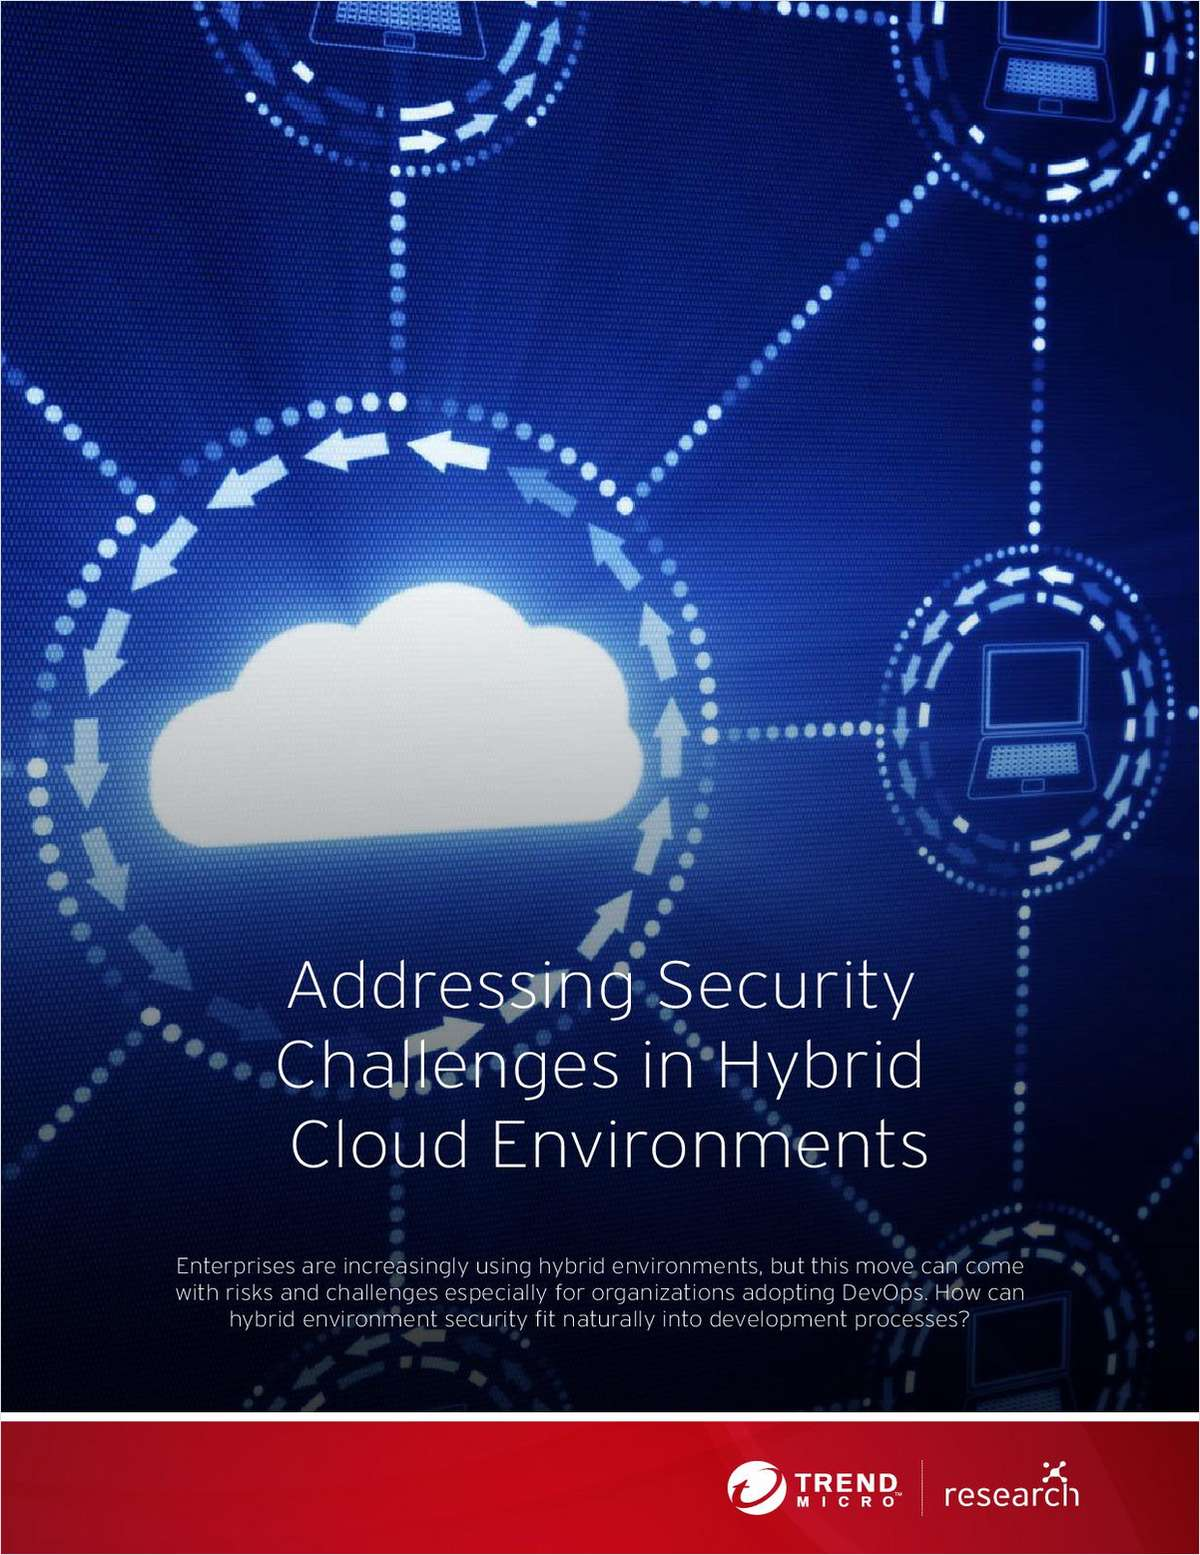 Addressing Security Challenges in Hybrid Cloud Environments